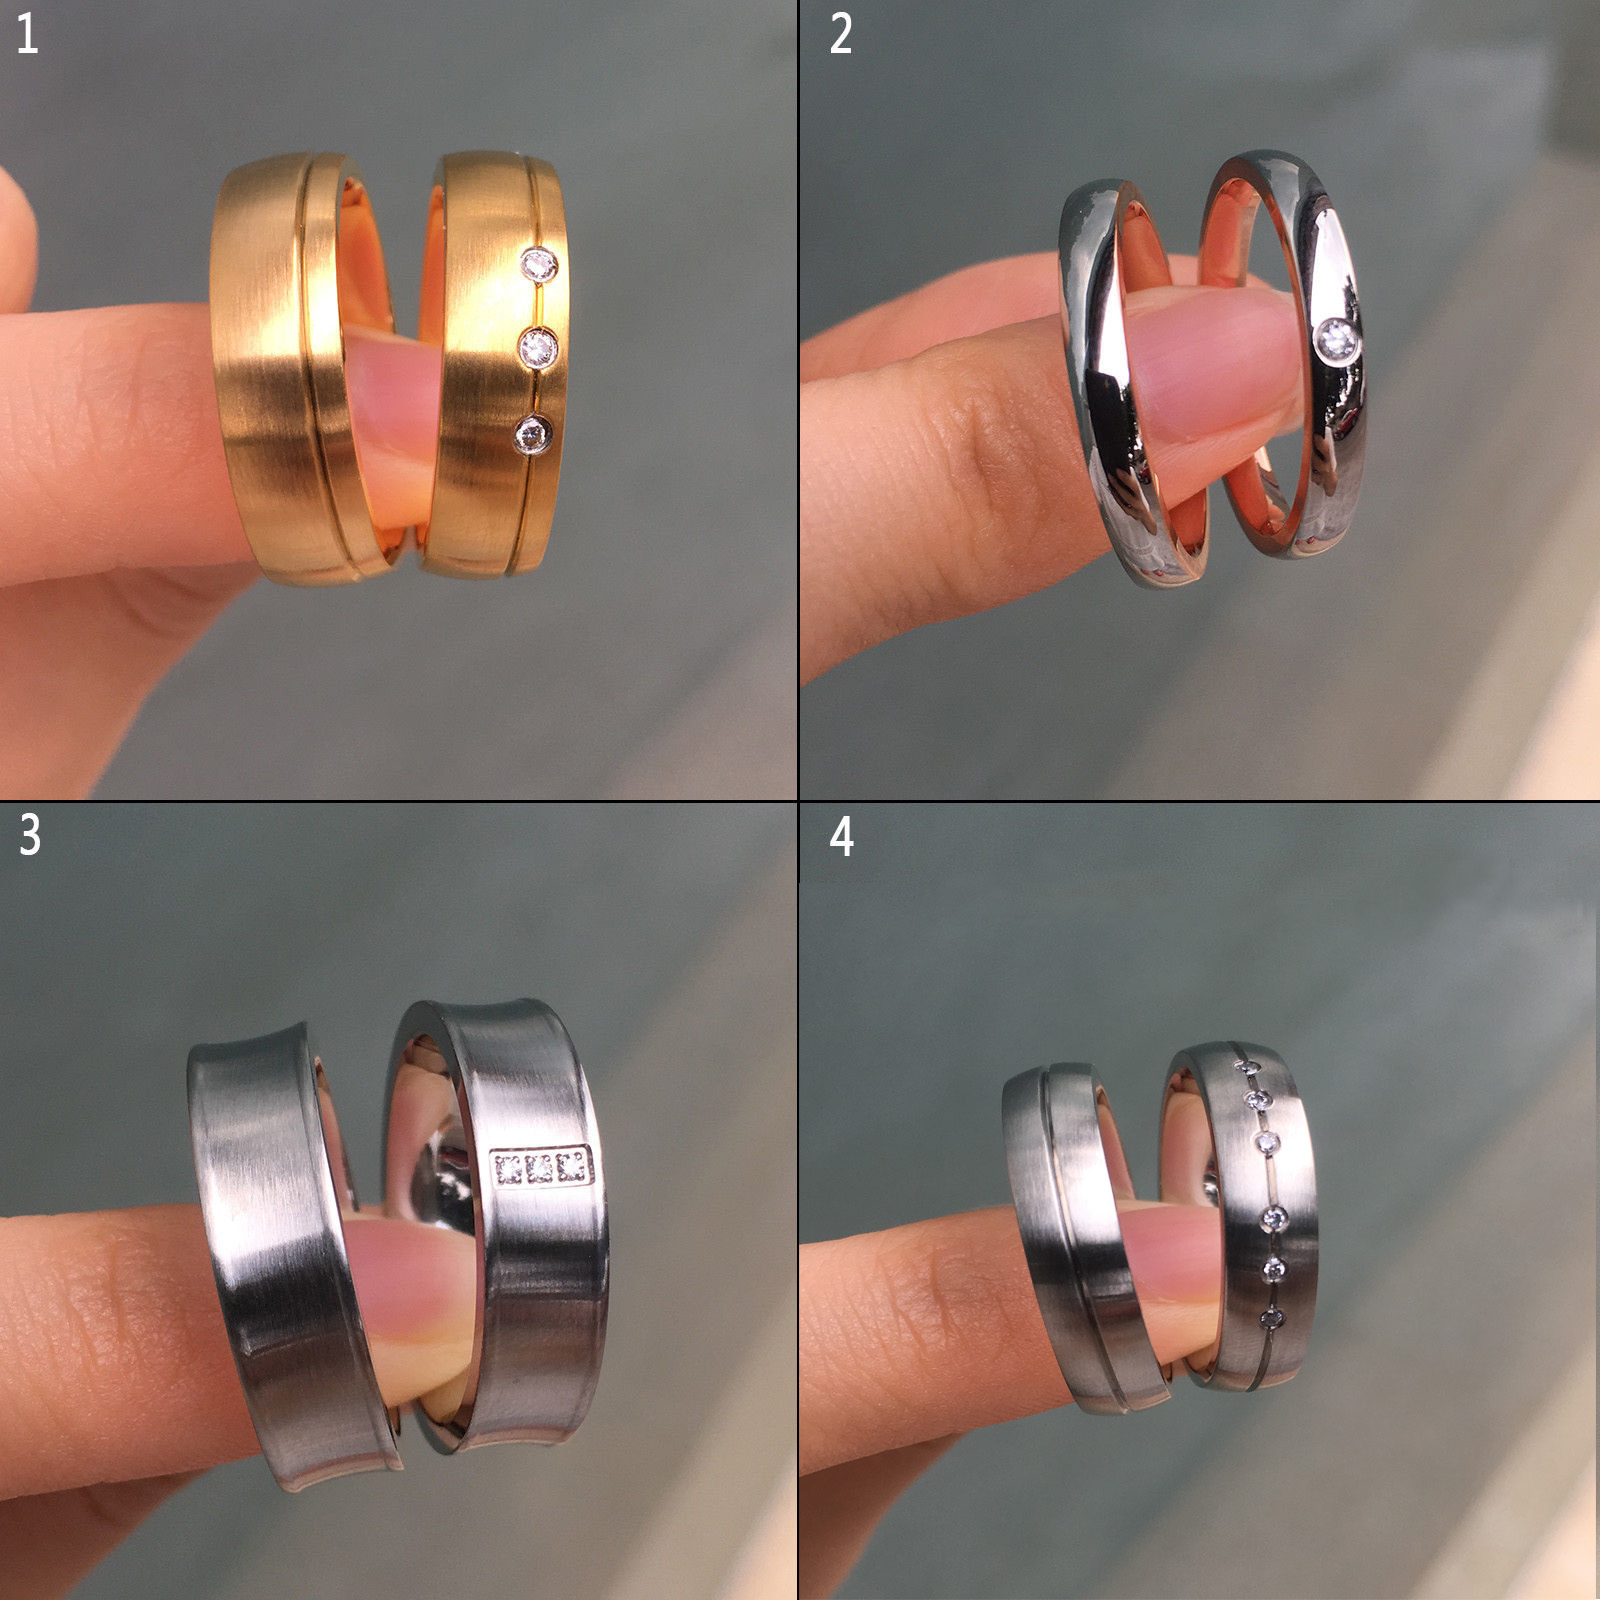 Details about His & Hers Cz Stainless Steel Couple Rings Men's Women's  Wedding Band Size 6-12